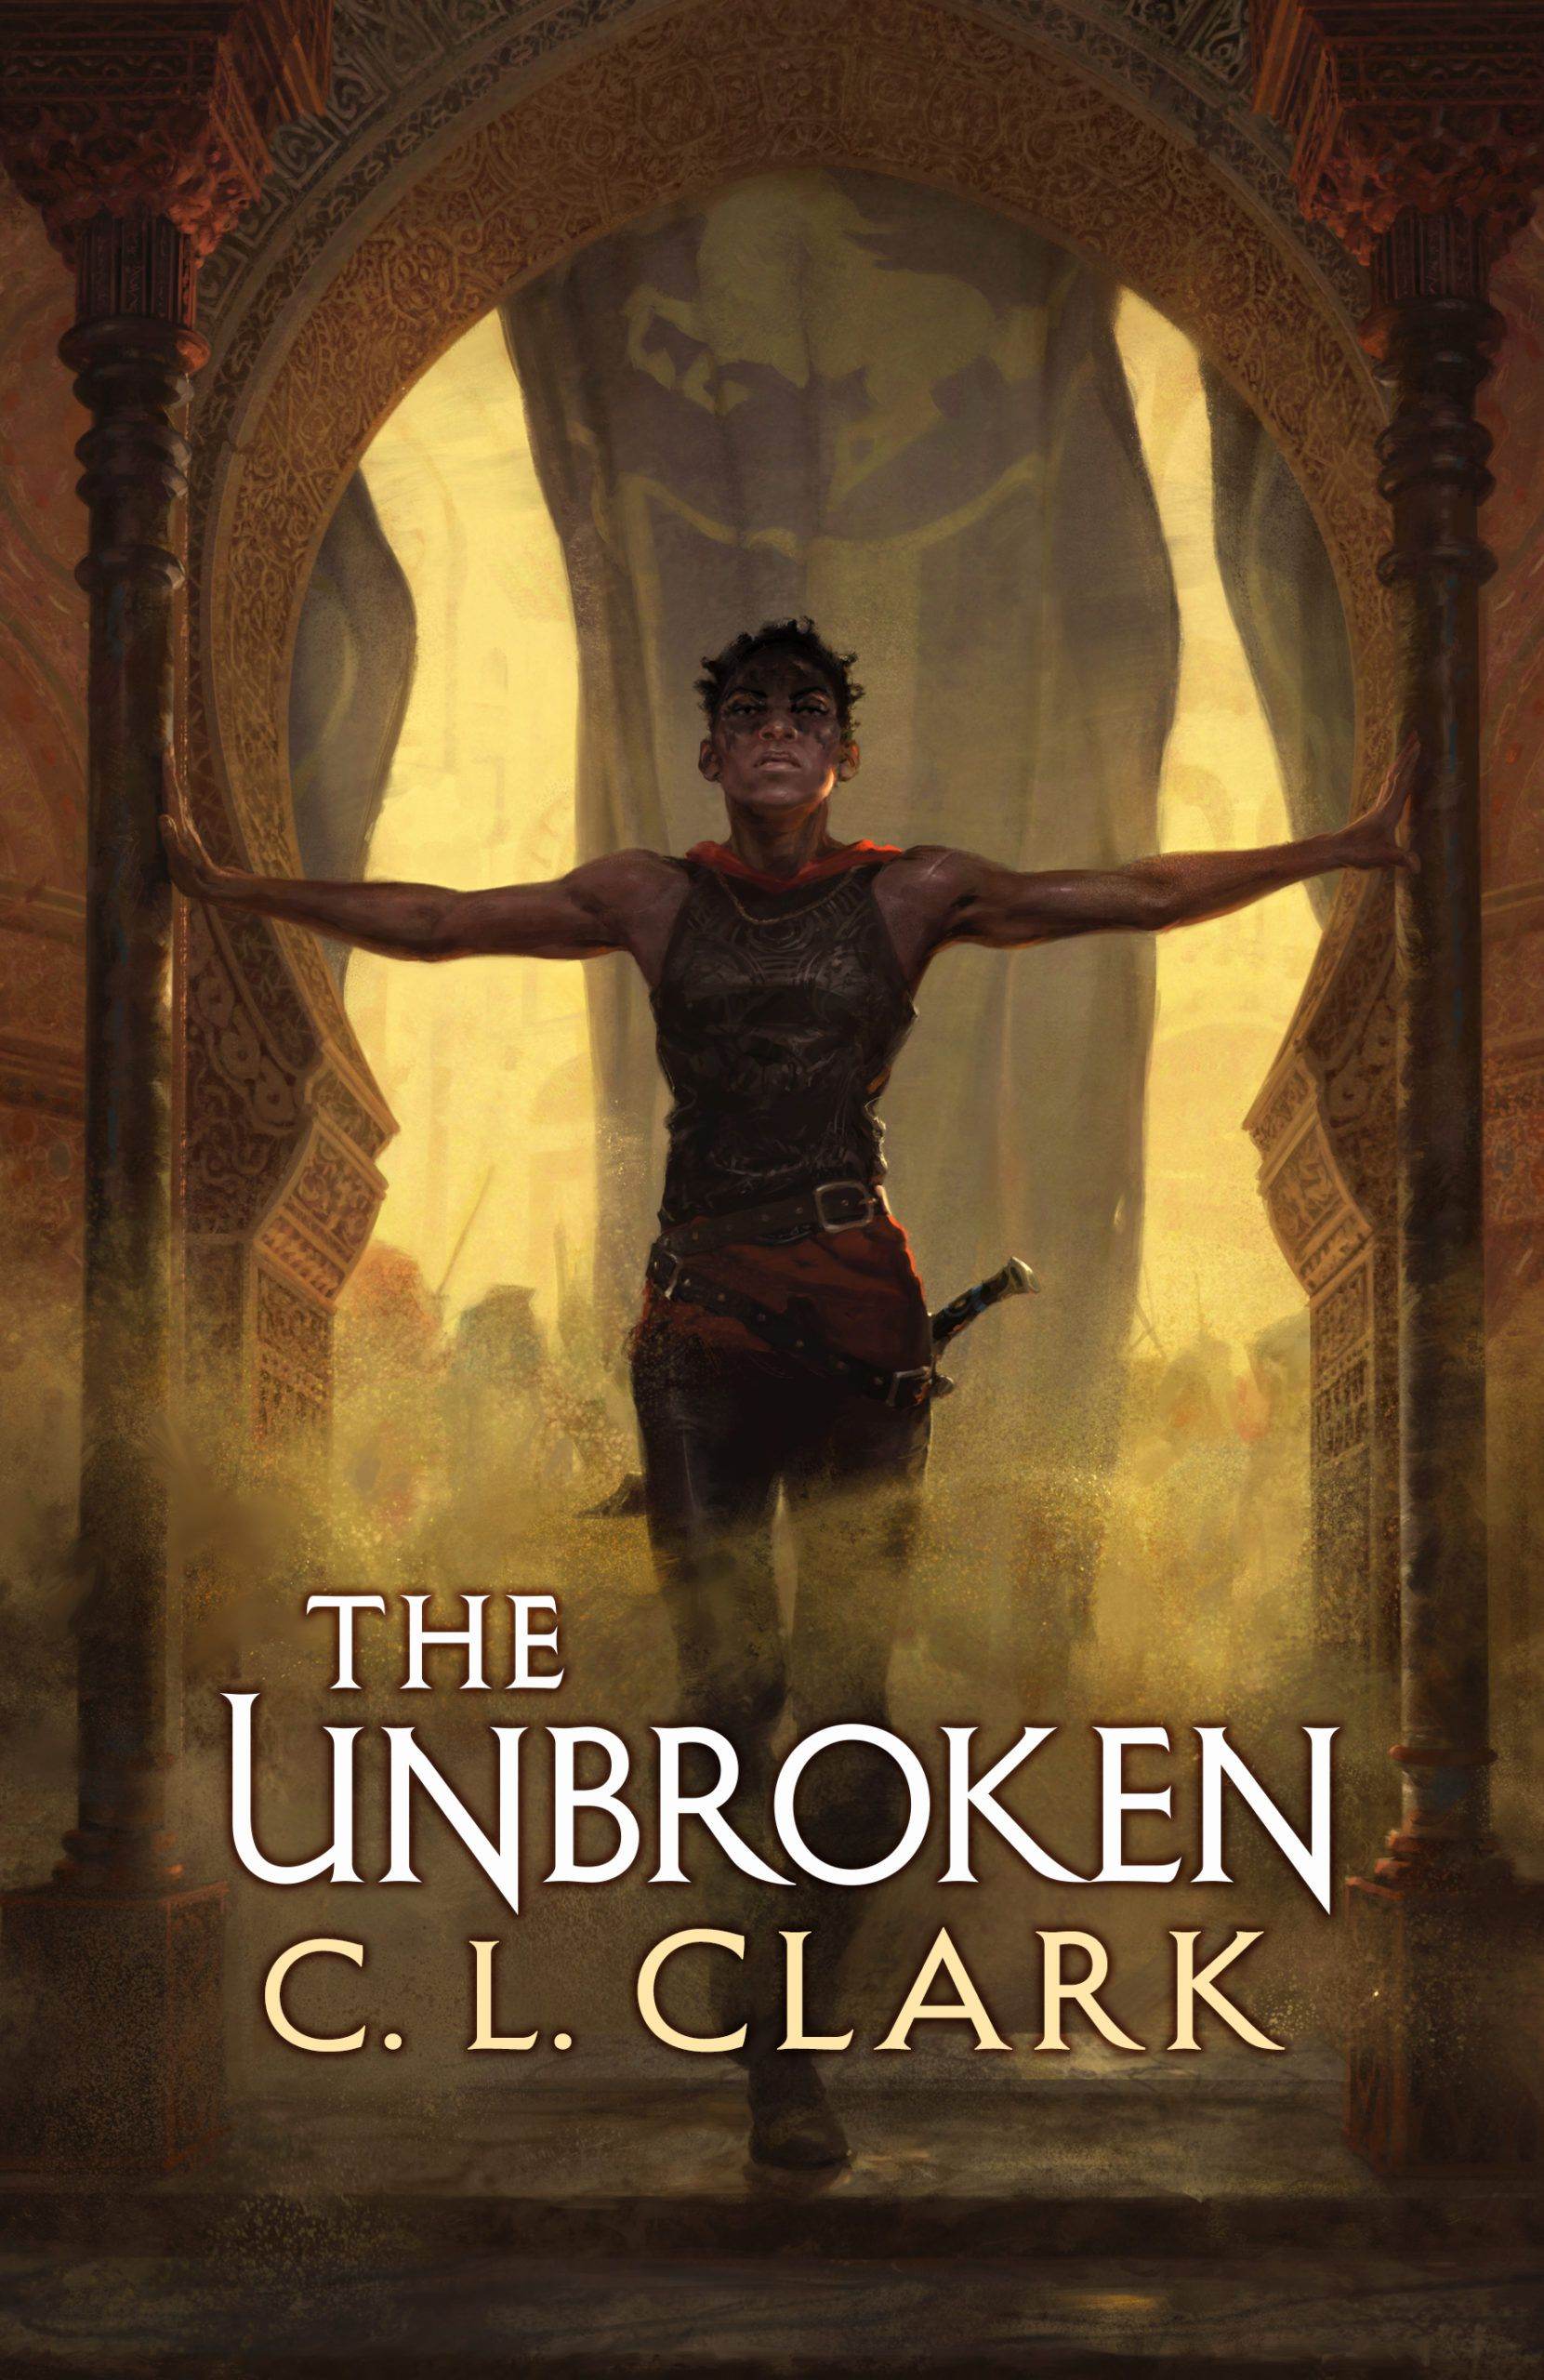 the unbroken cl clark cover